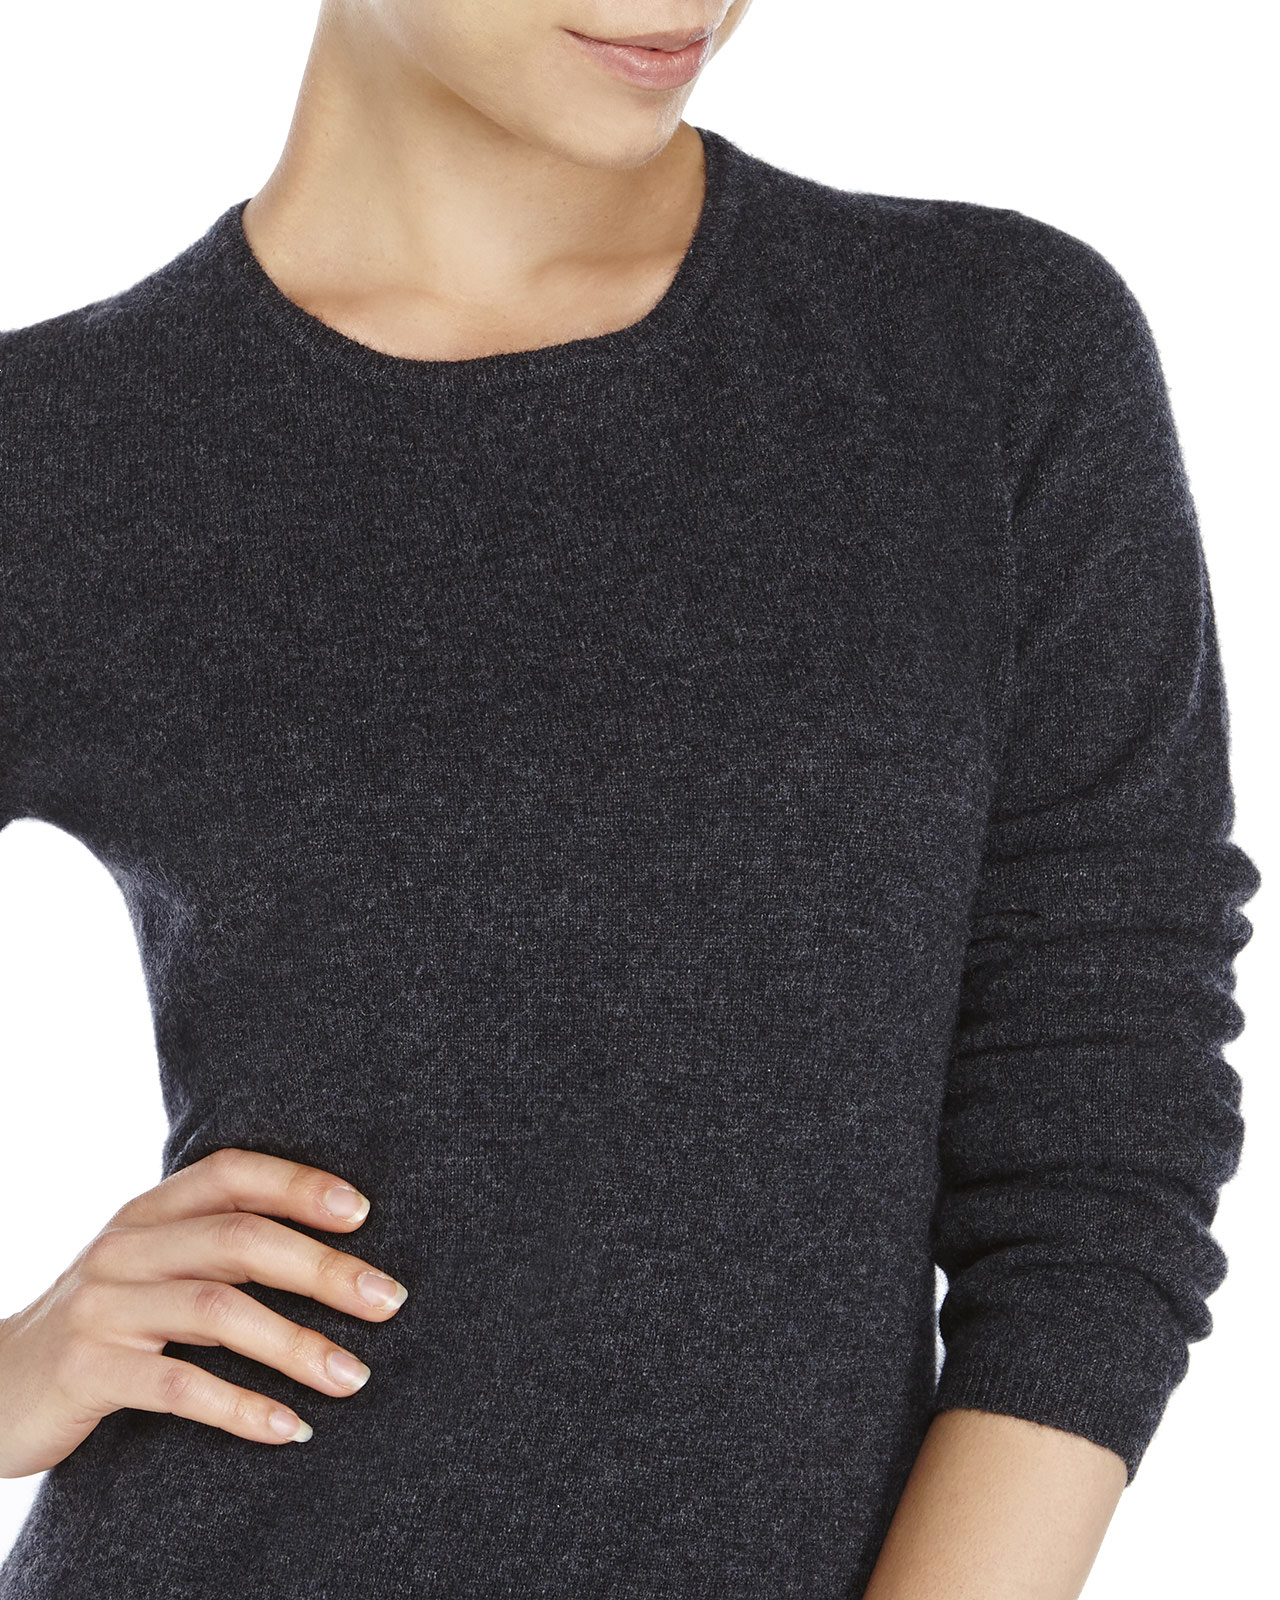 Qi Crew Neck Knit Cashmere Sweater in Gray | Lyst